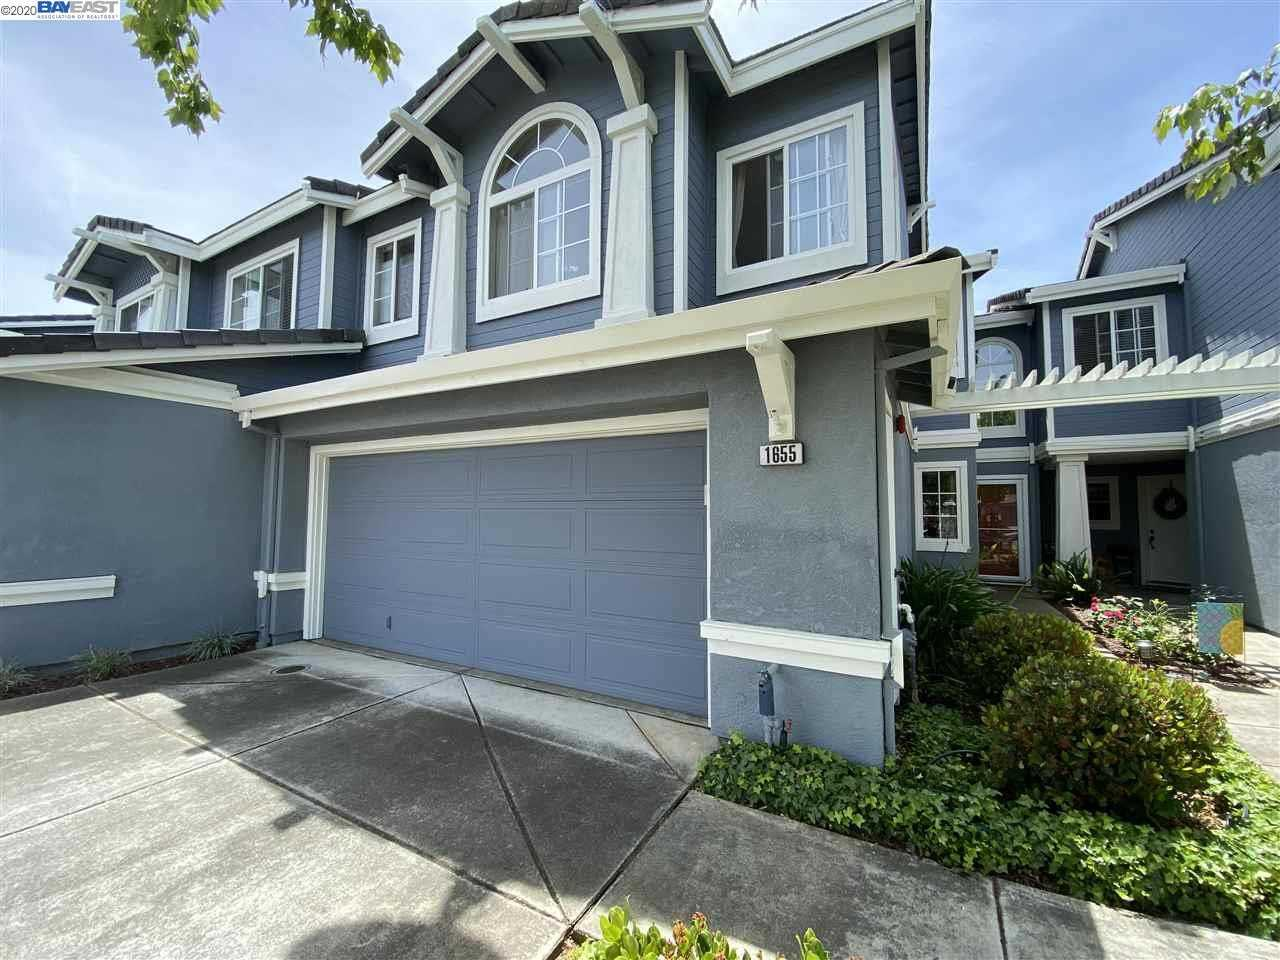 $760,000 - 3Br/3Ba -  for Sale in Portola Meadows, Livermore